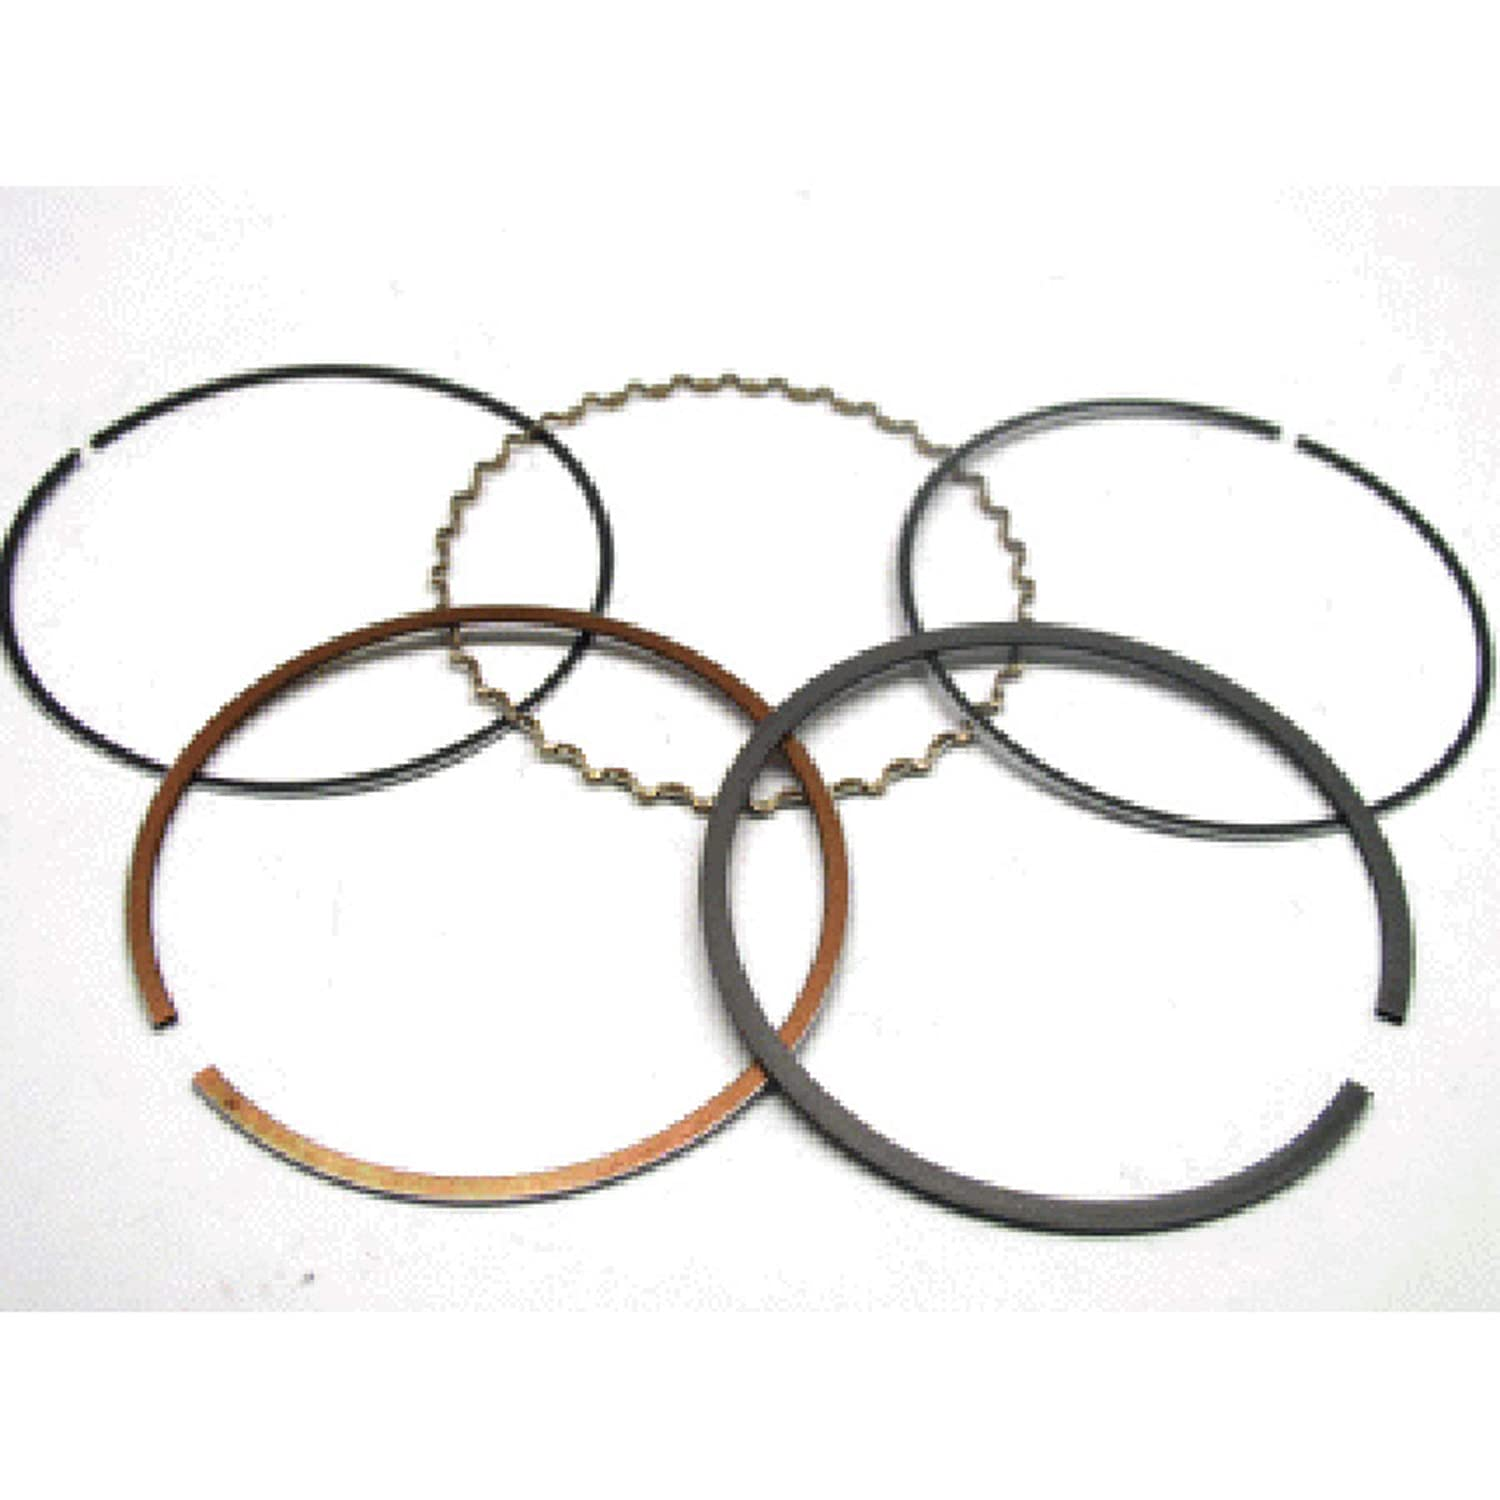 91.97mm For 2013 Polaris Ranger 500 EFI Utility Vehicle Piston Ring Set